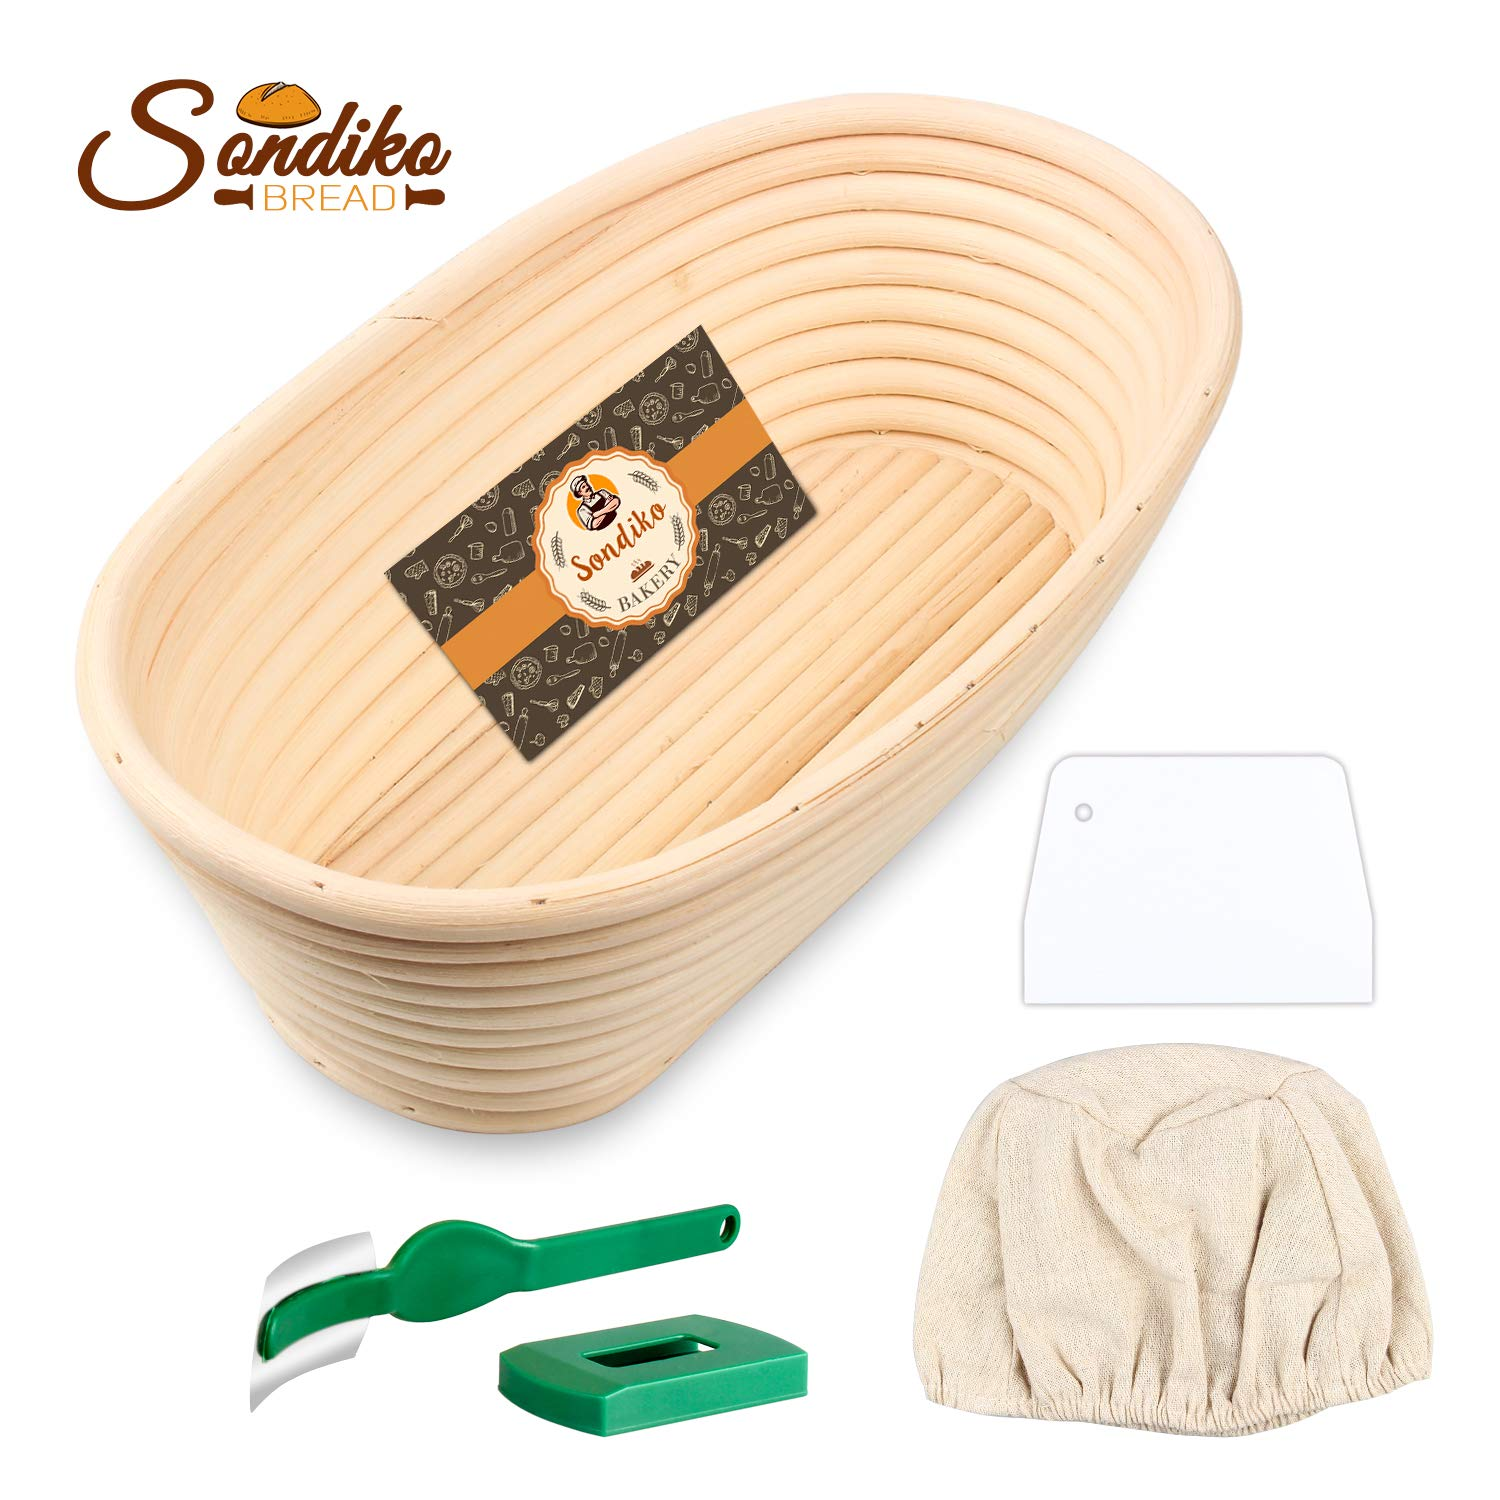 Sondiko Oval Bread Proofing Basket, Handmade Banneton Bread Proofing Basket Brotform with Bread Lame, Dough Scraper, Proofing Cloth Liner for Sourdough Bread, Baking(9.6 x 6 x 3 inches) by Sondiko